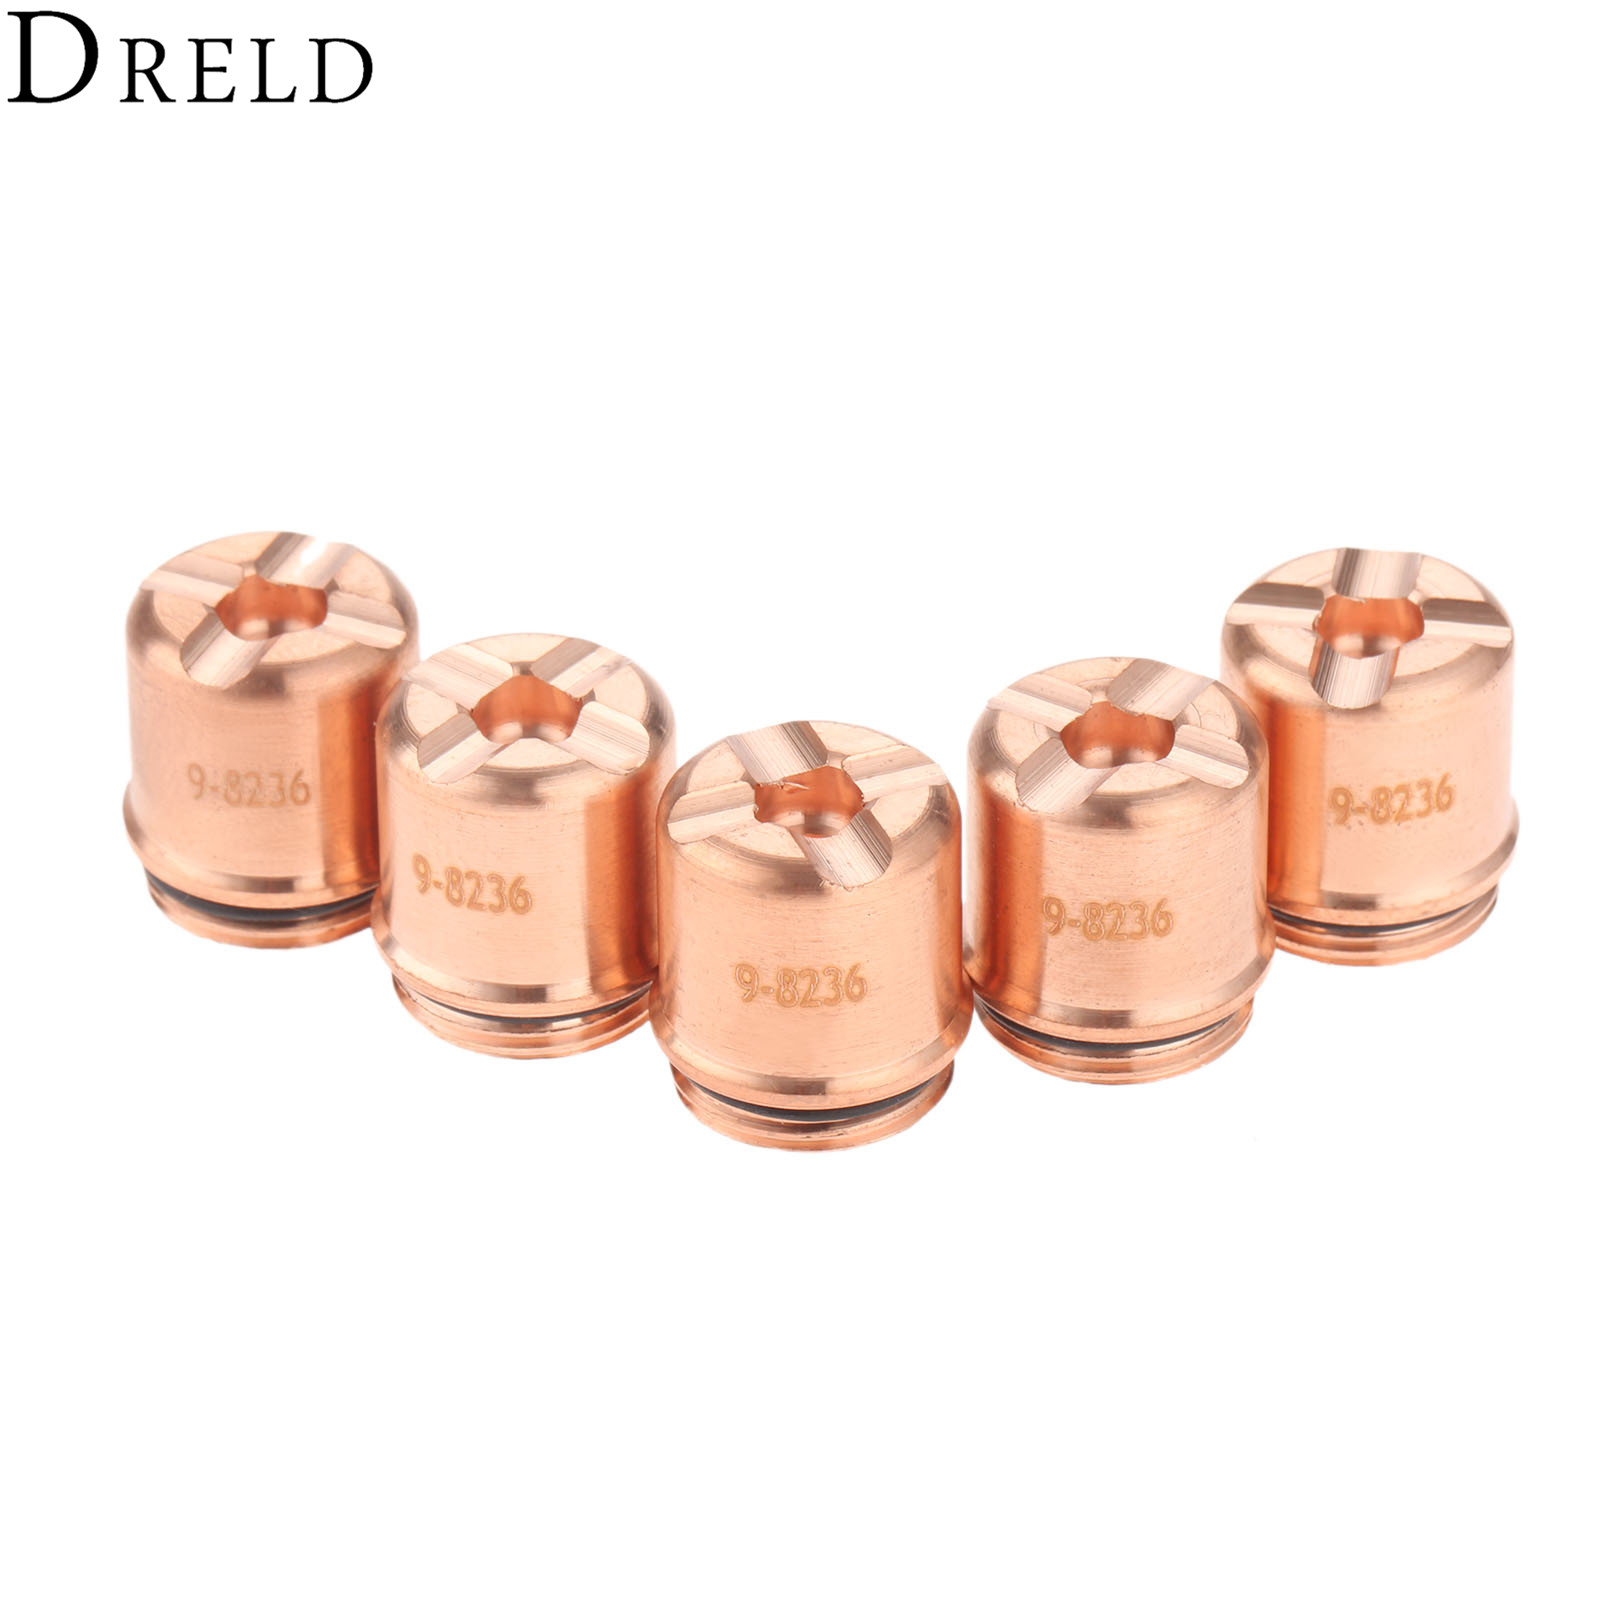 DRELD 5Pc Plasma Shield Cap 9-8236 For SL60 SL100 Plasma Cutter Torch Consumables Parts 70-100A Welding Soldering Supplies